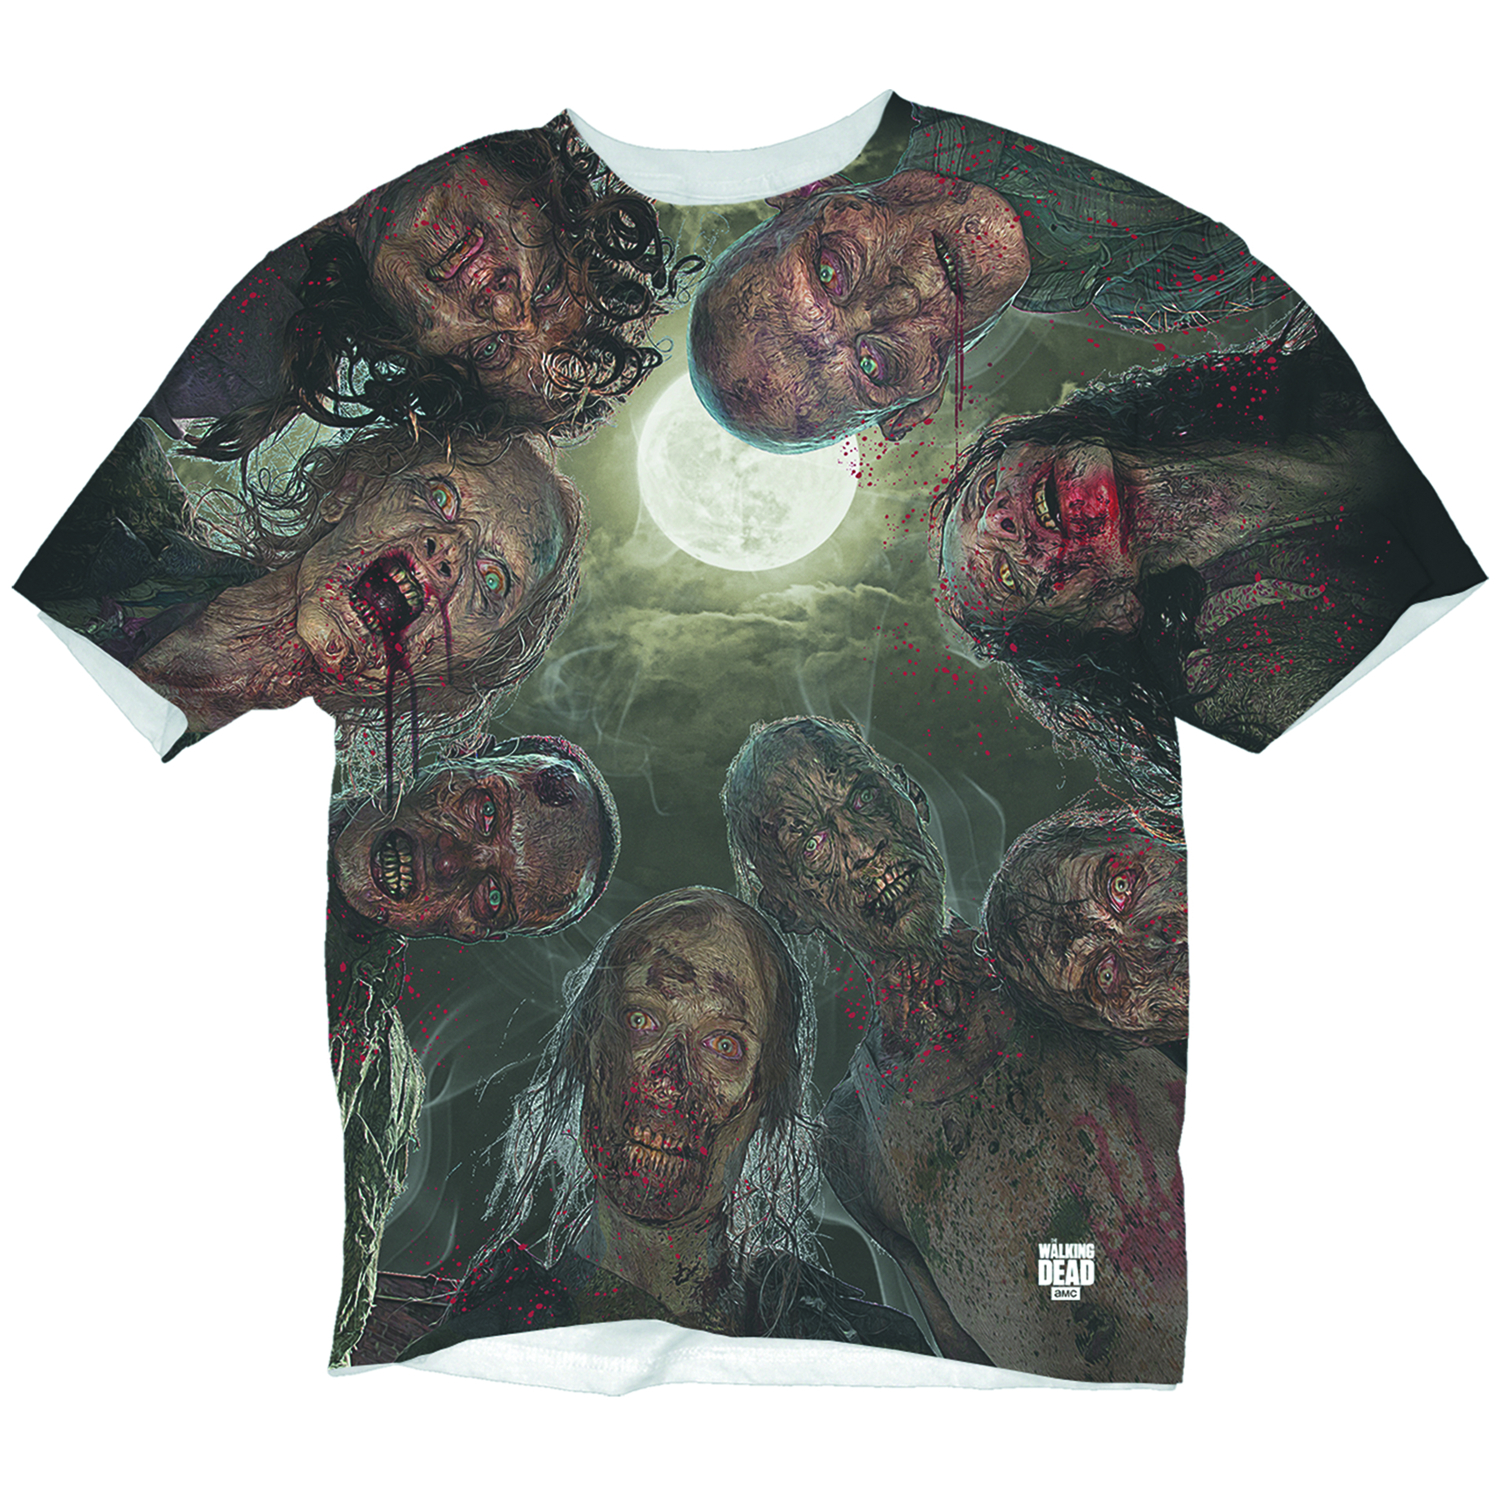 WALKING DEAD WALKERS OVER YOU SUB T/S LG